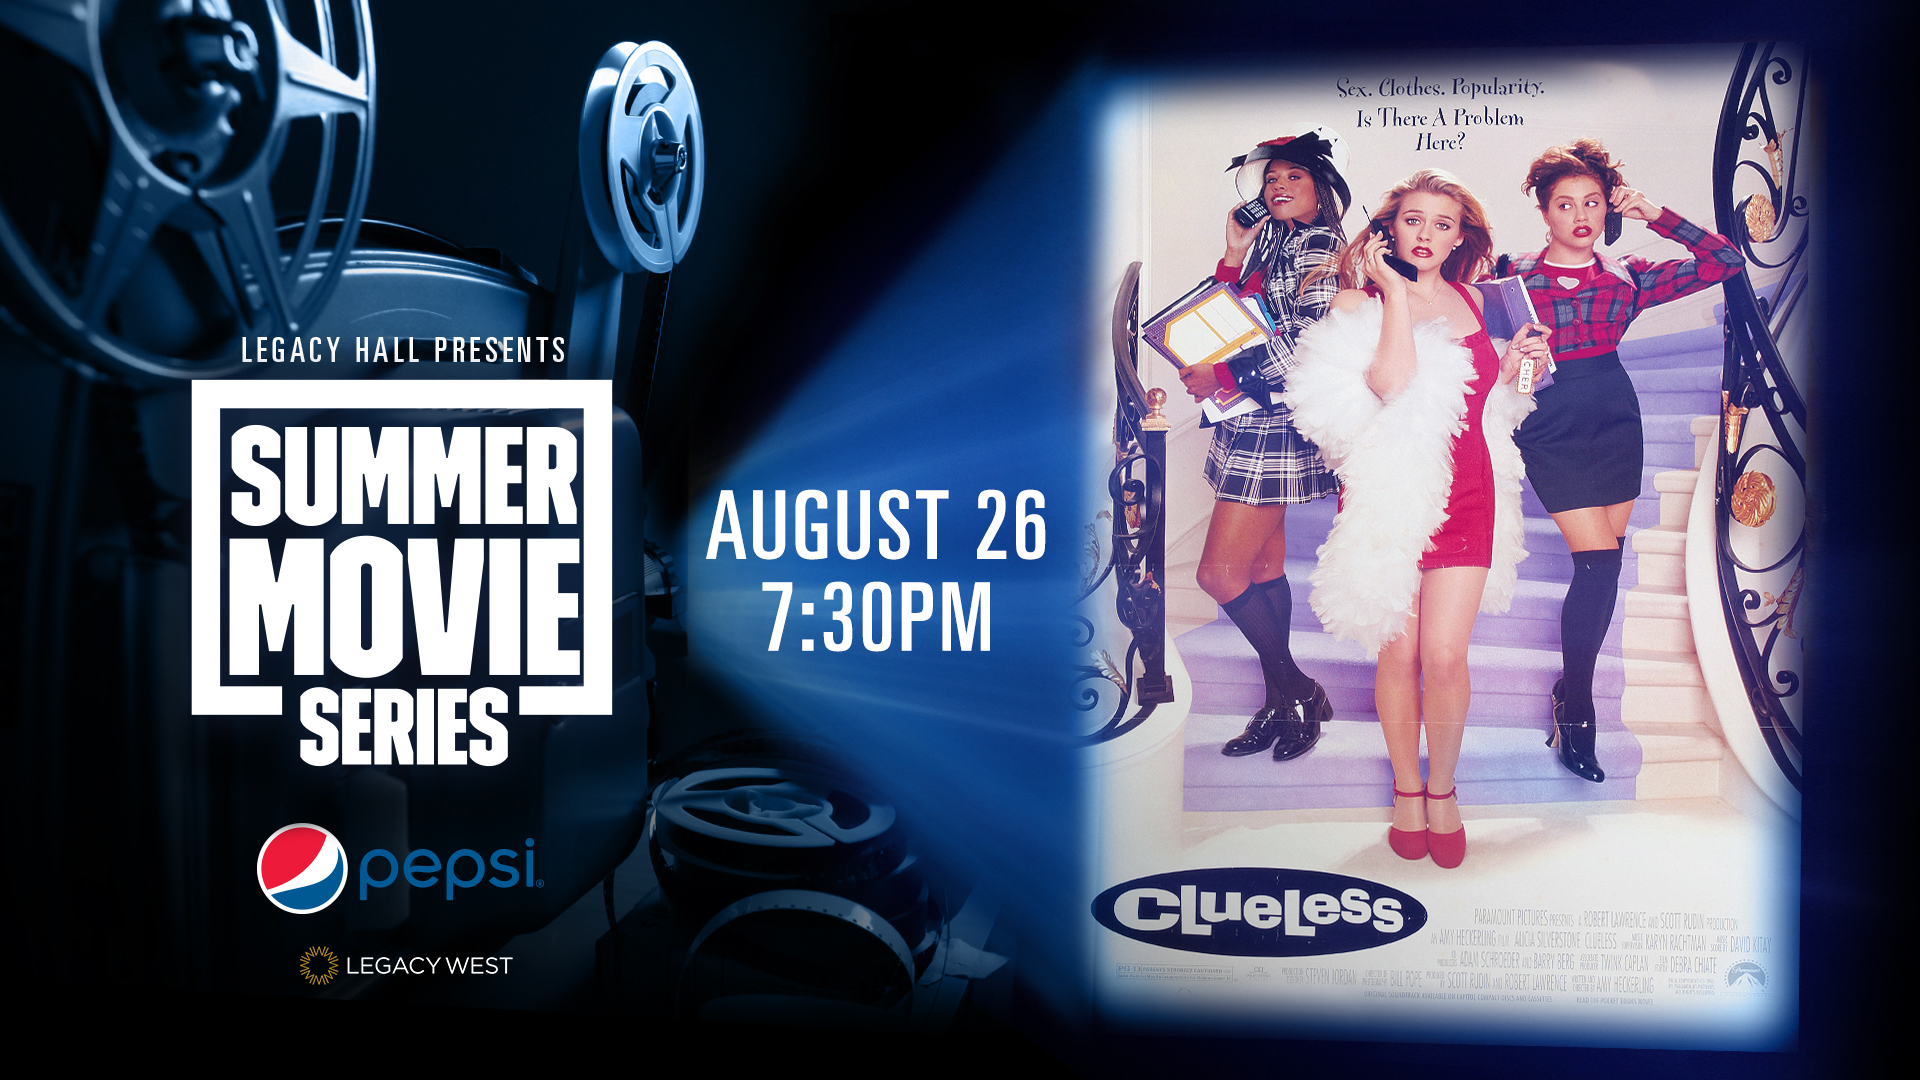 Promo image of Pepsi Summer Movie Series: Clueless